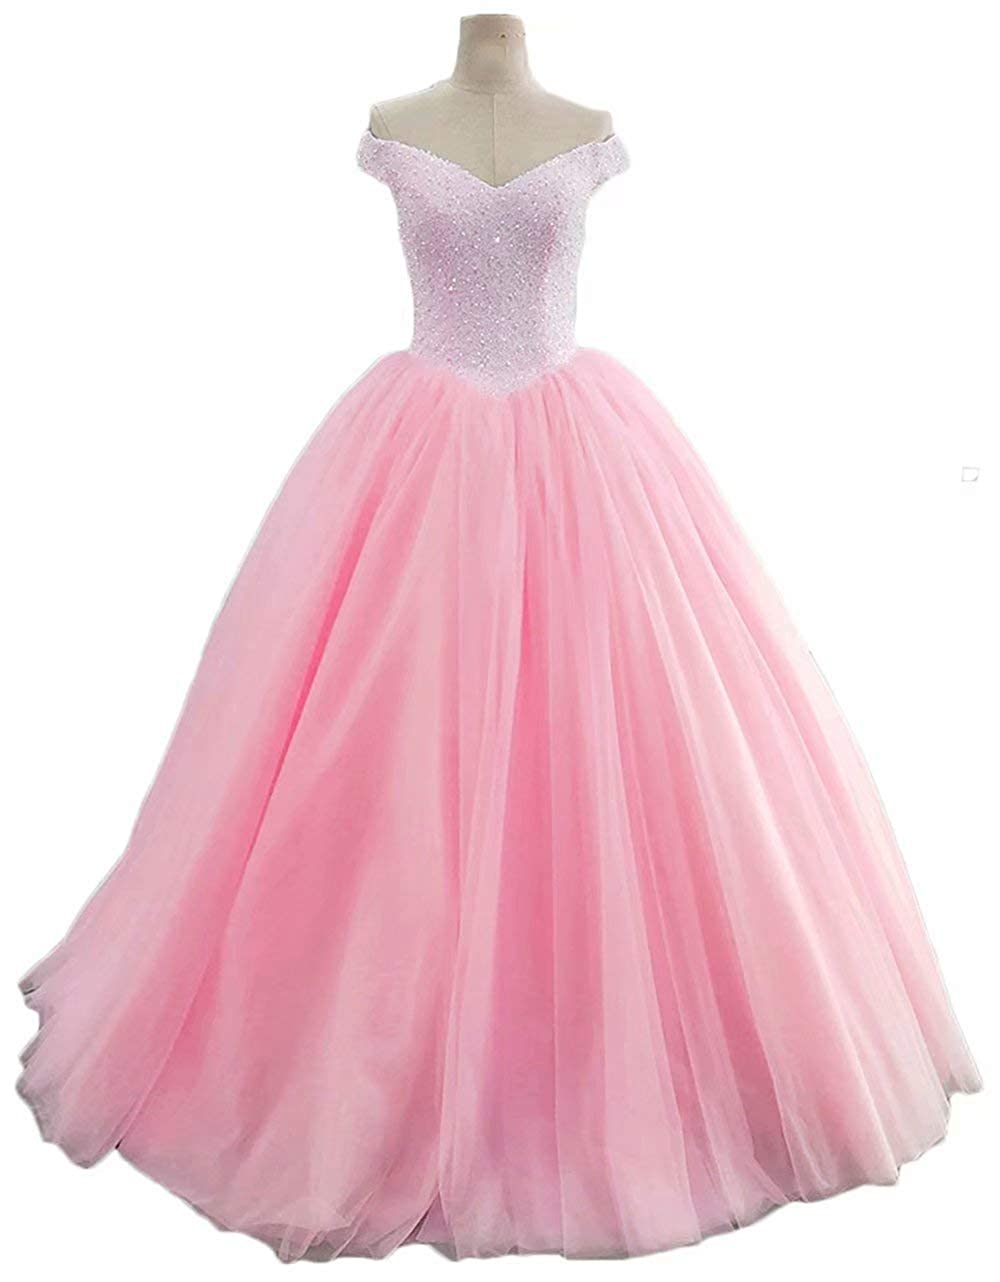 pink Pink Womens Off The Shoulder Prom Dresses Long 2019 Beaded Tulle A Line Evening Formal Gowns Wedding Party Dresses